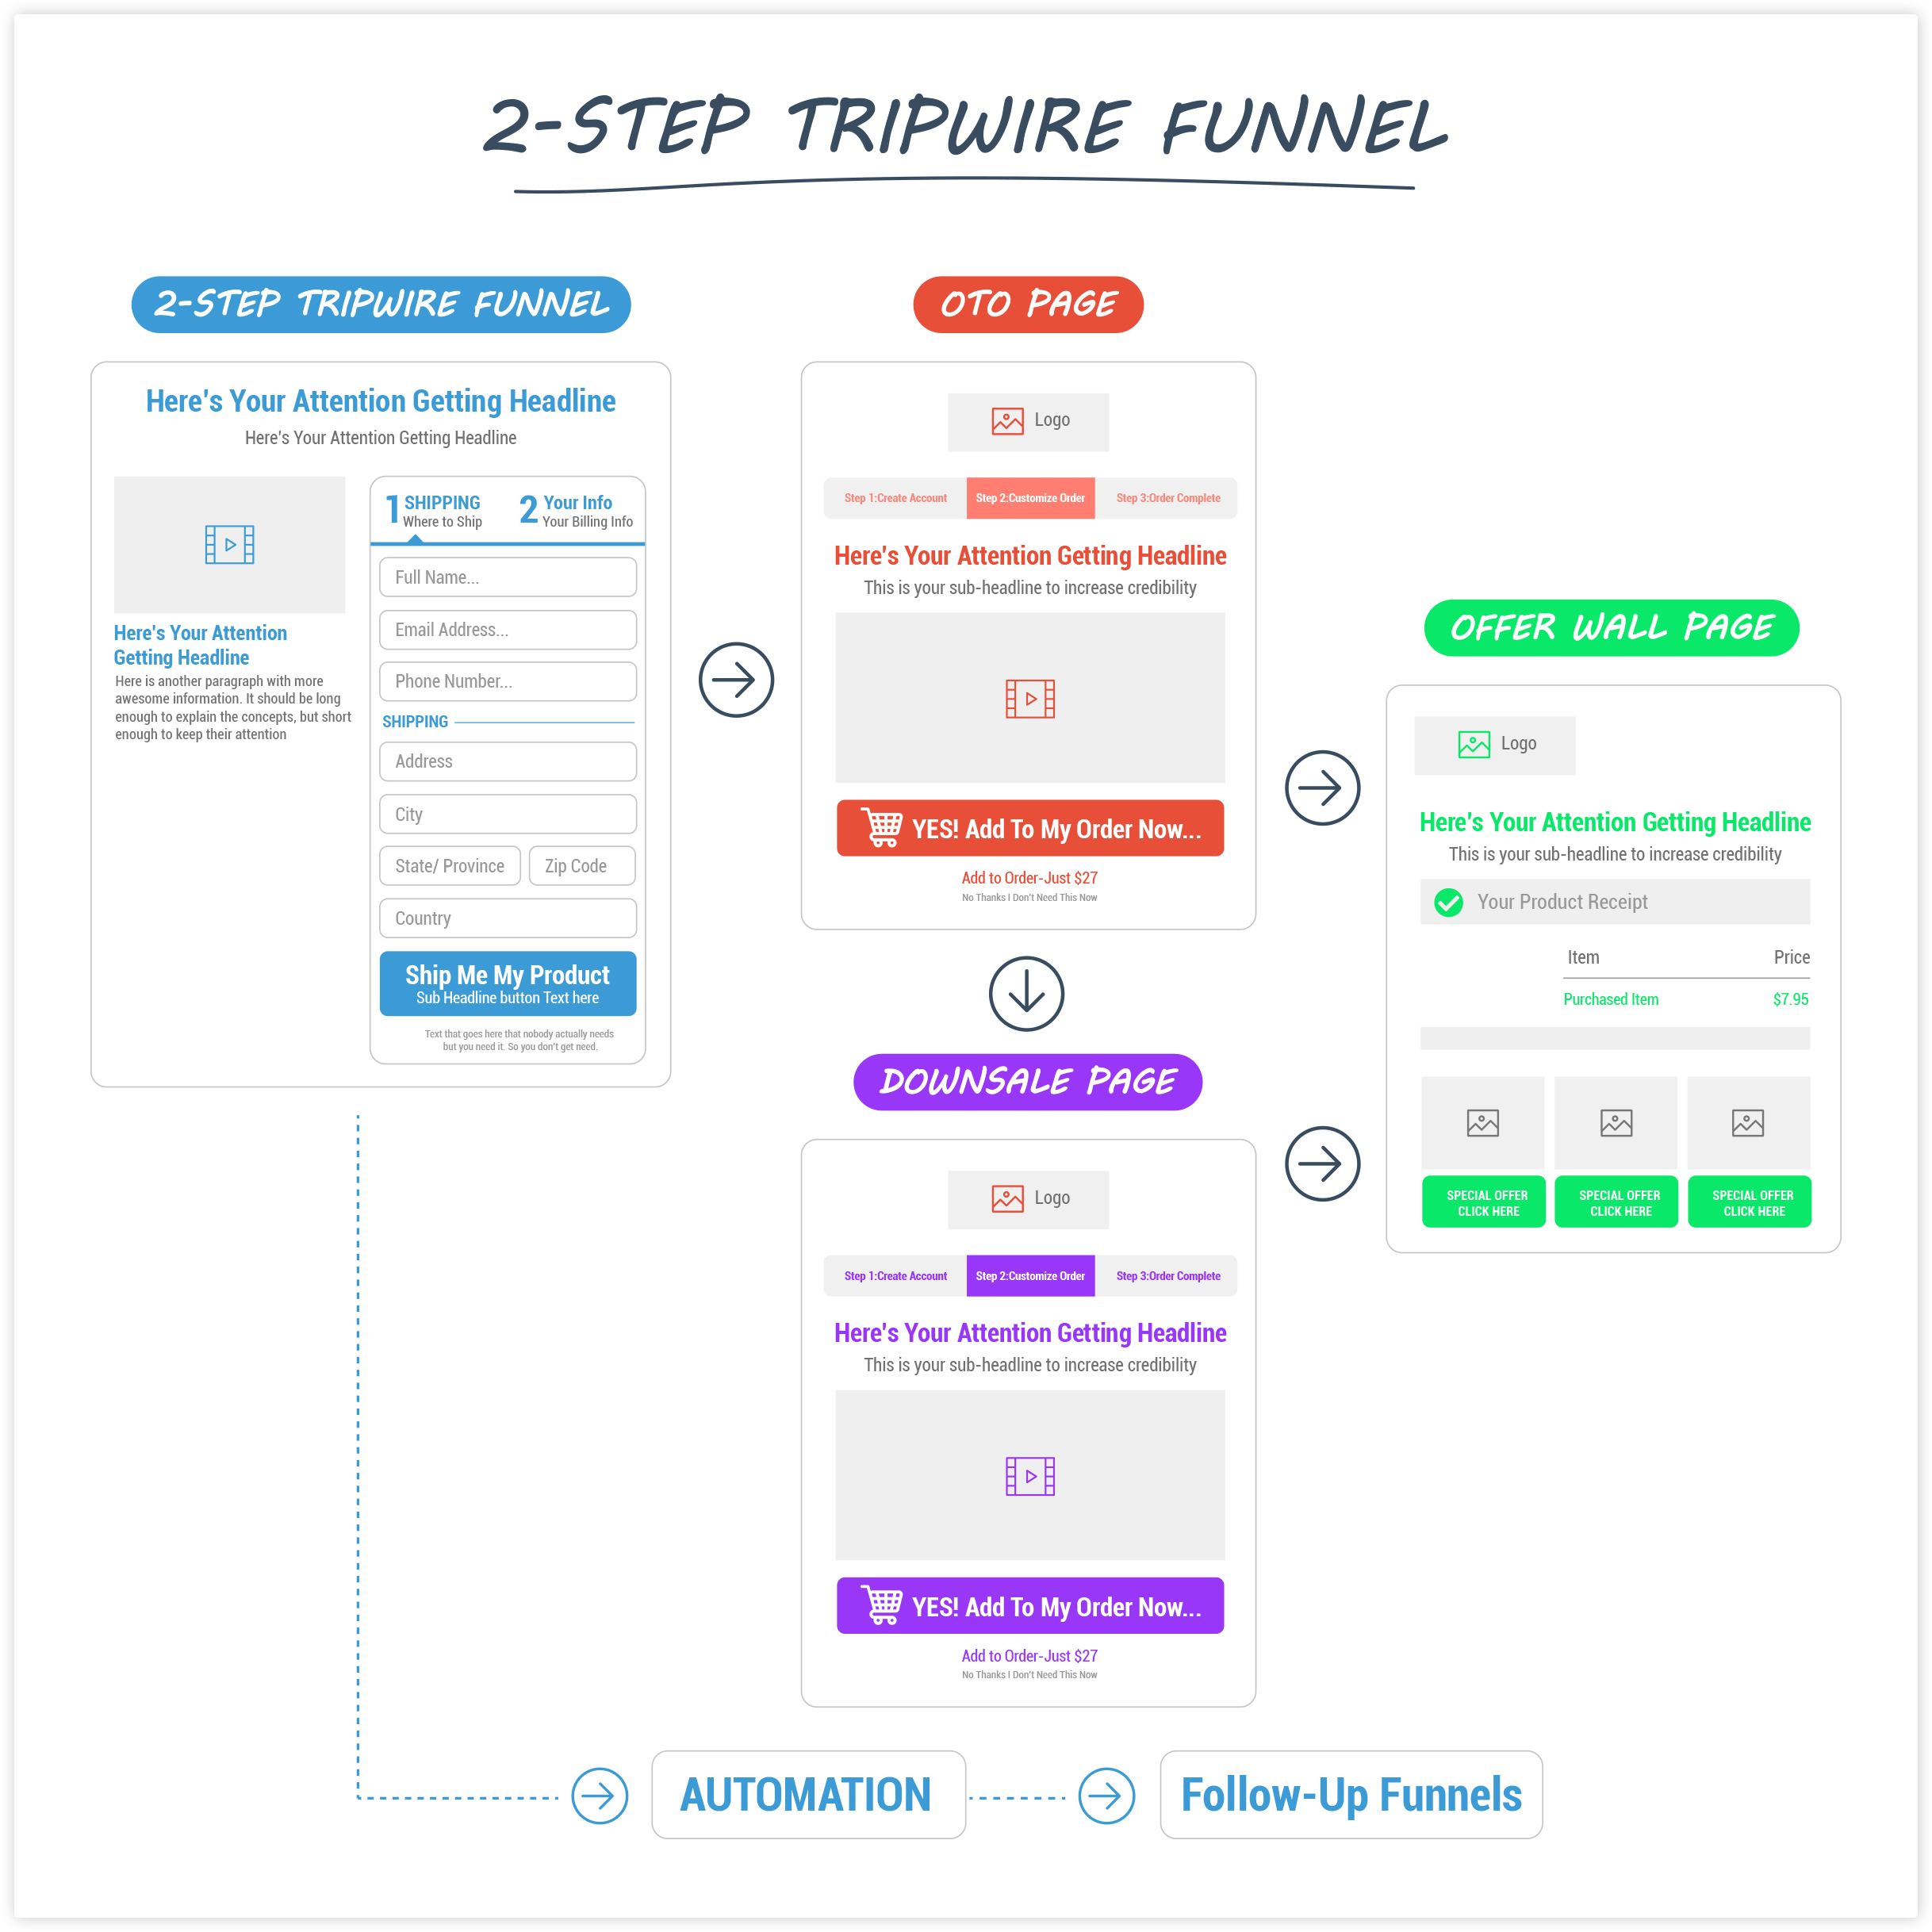 ClickFunnels 2-Step Tripwire Funnel Flow Example